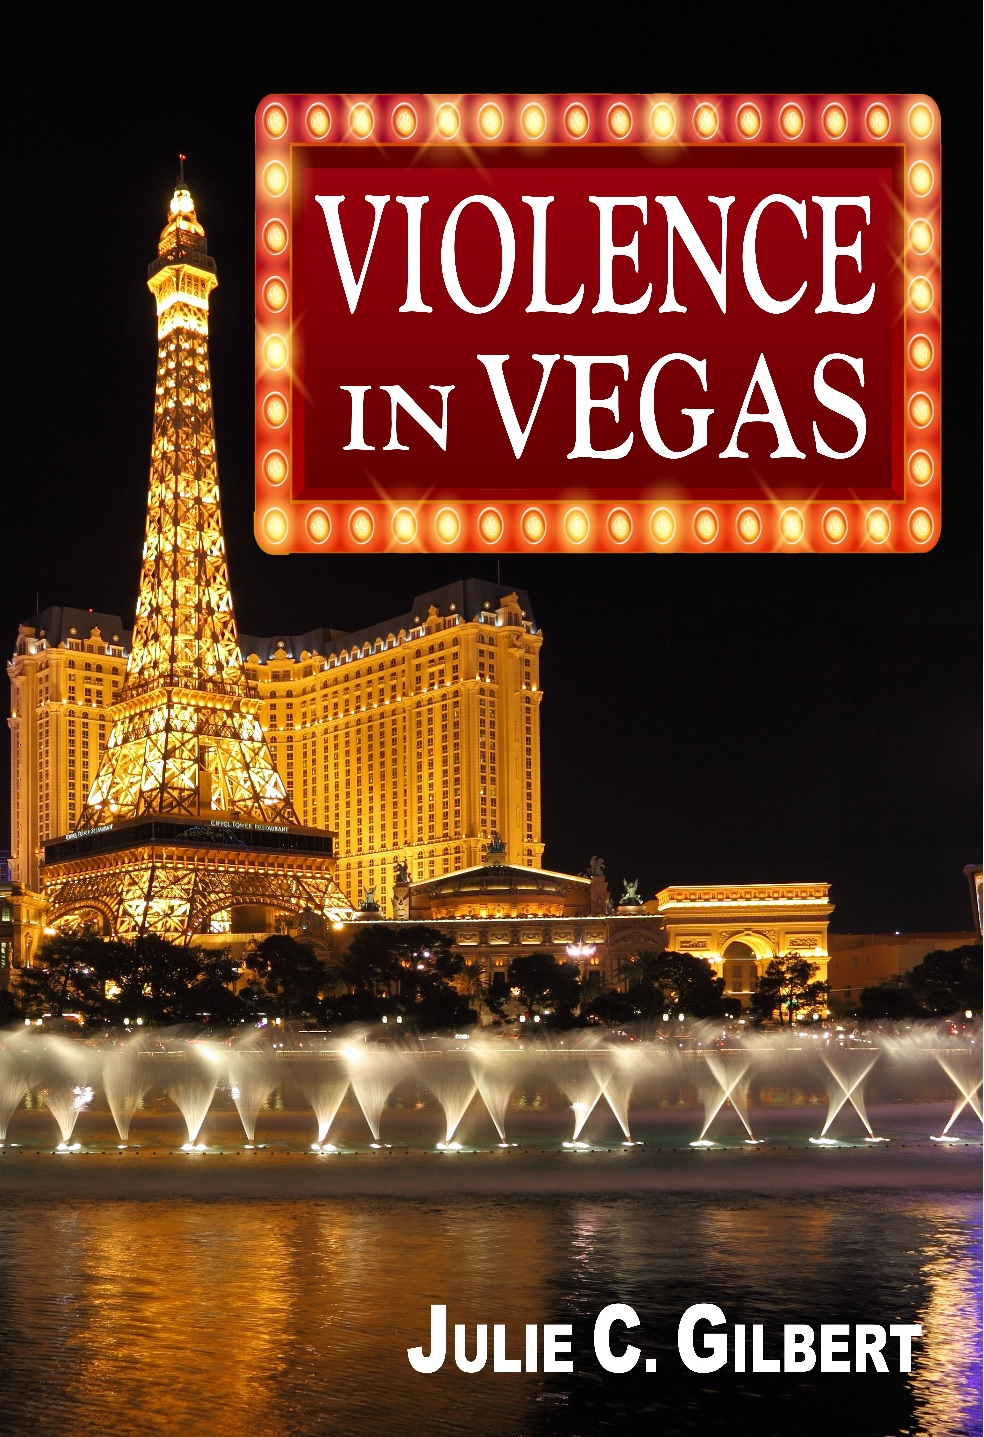 Violence in Vegas final